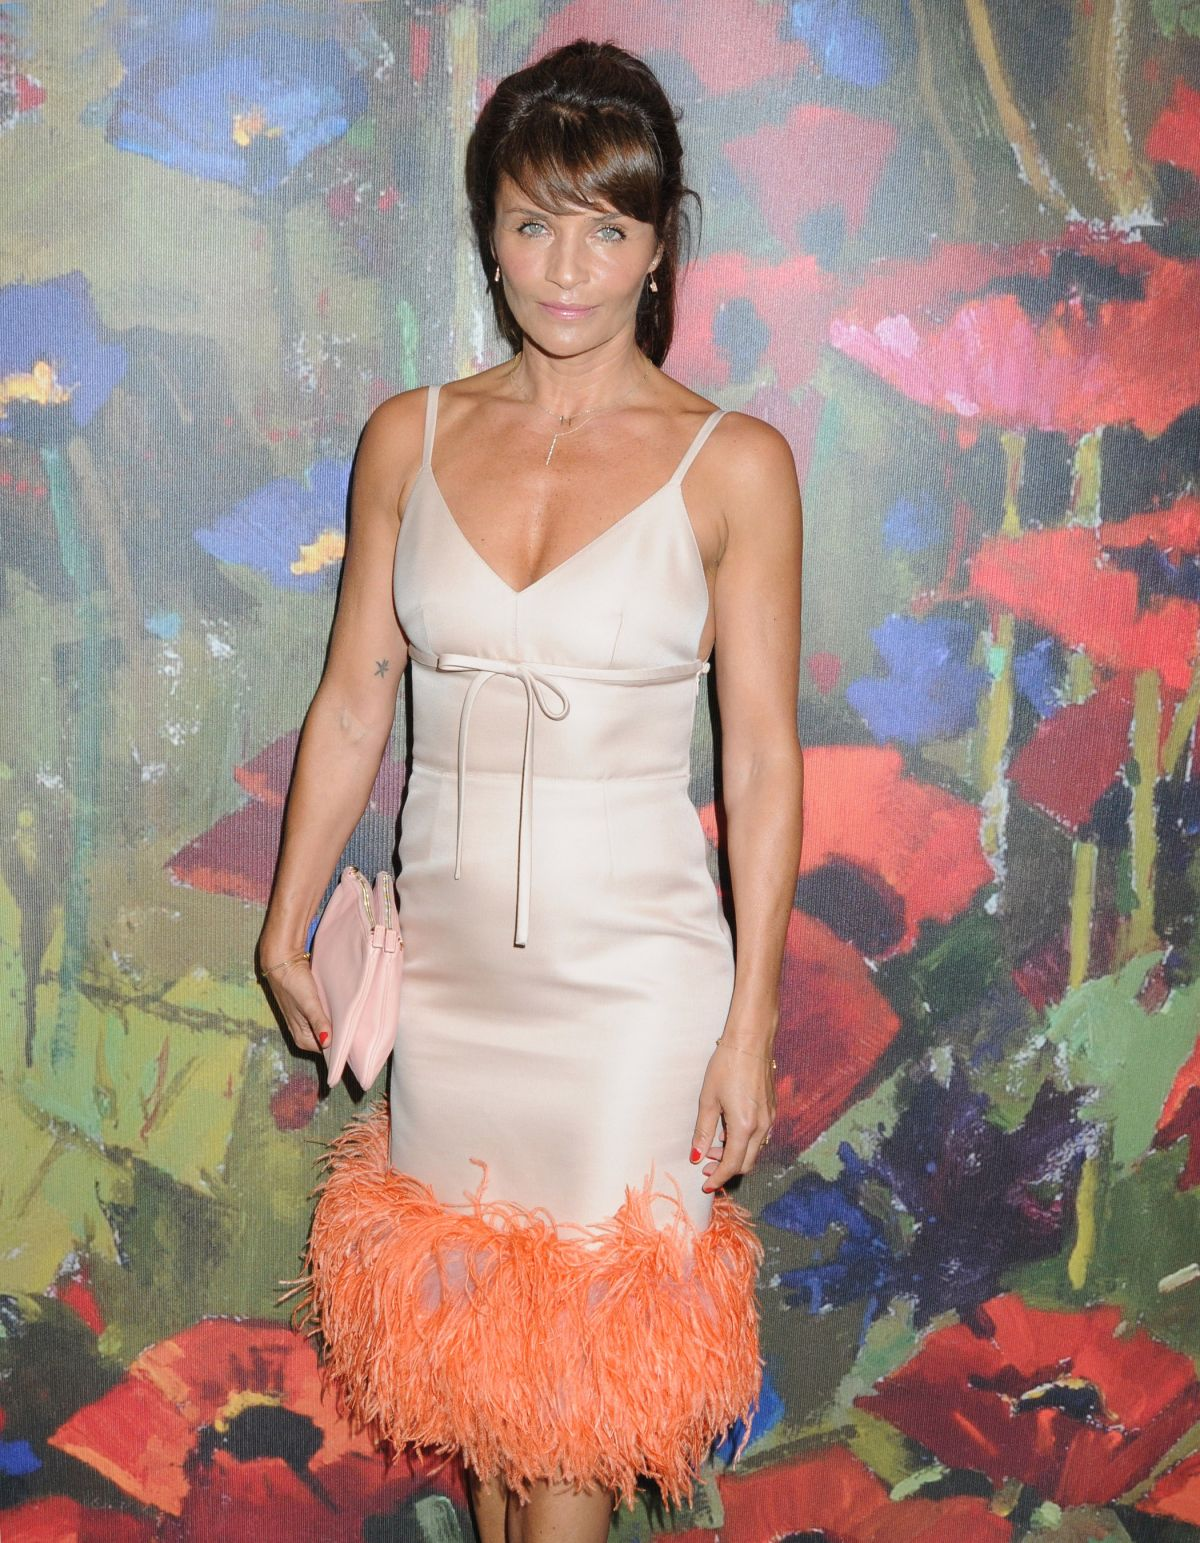 Helena Christensen At Take Home A Nude Auction, New York